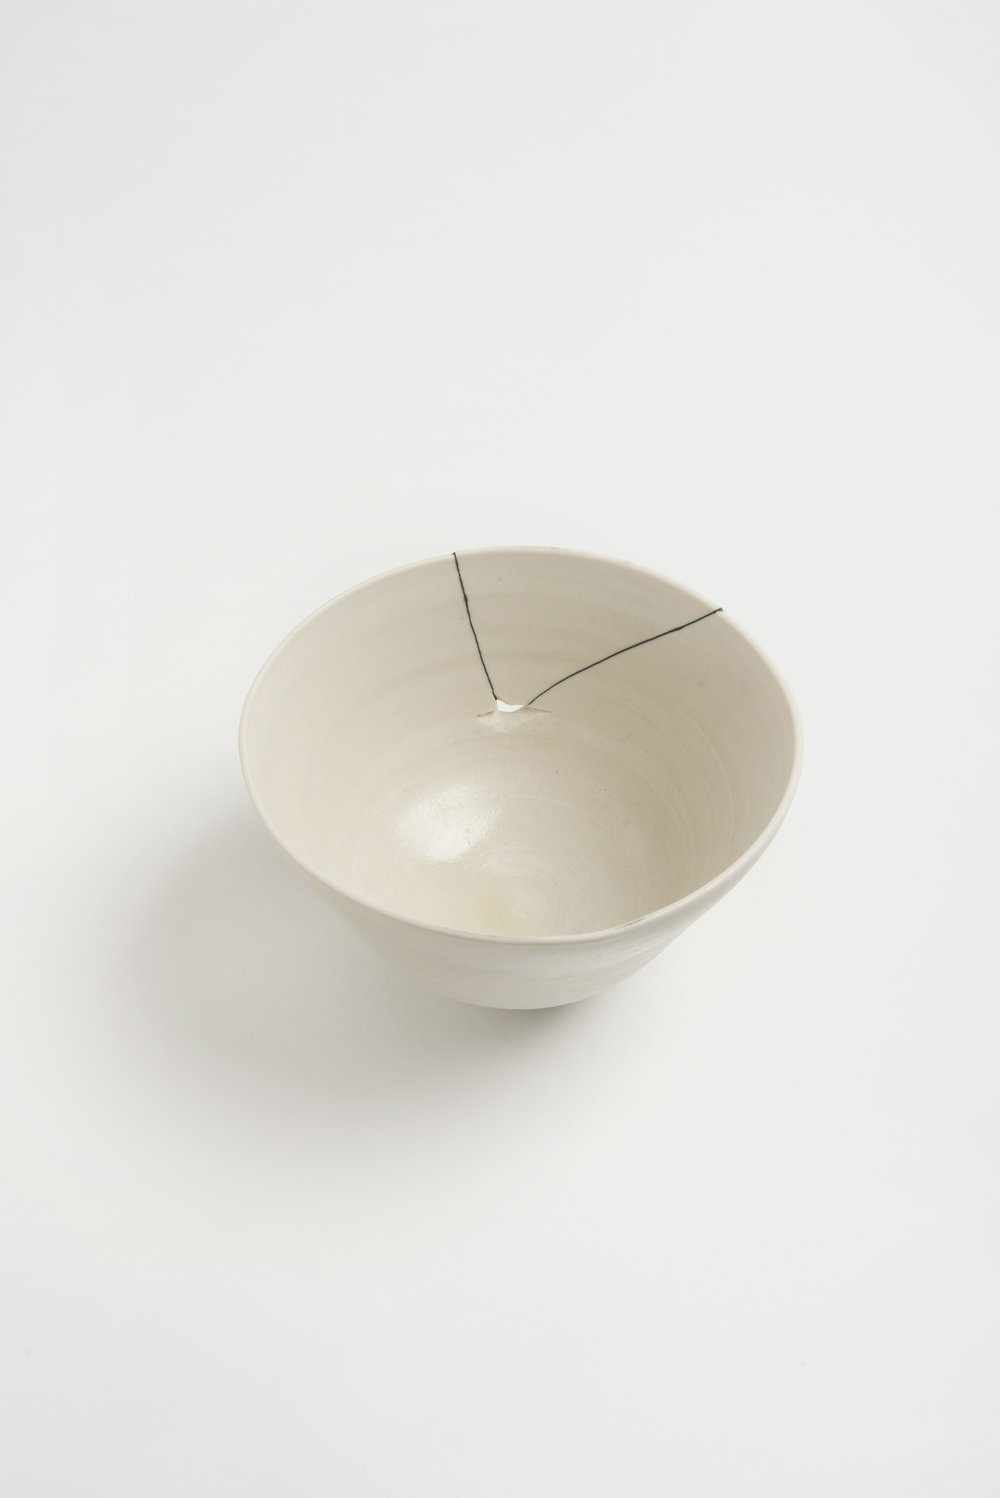 white-fracture-series-bowl-romy-northover-ceramics-the-garnered-32.jpg